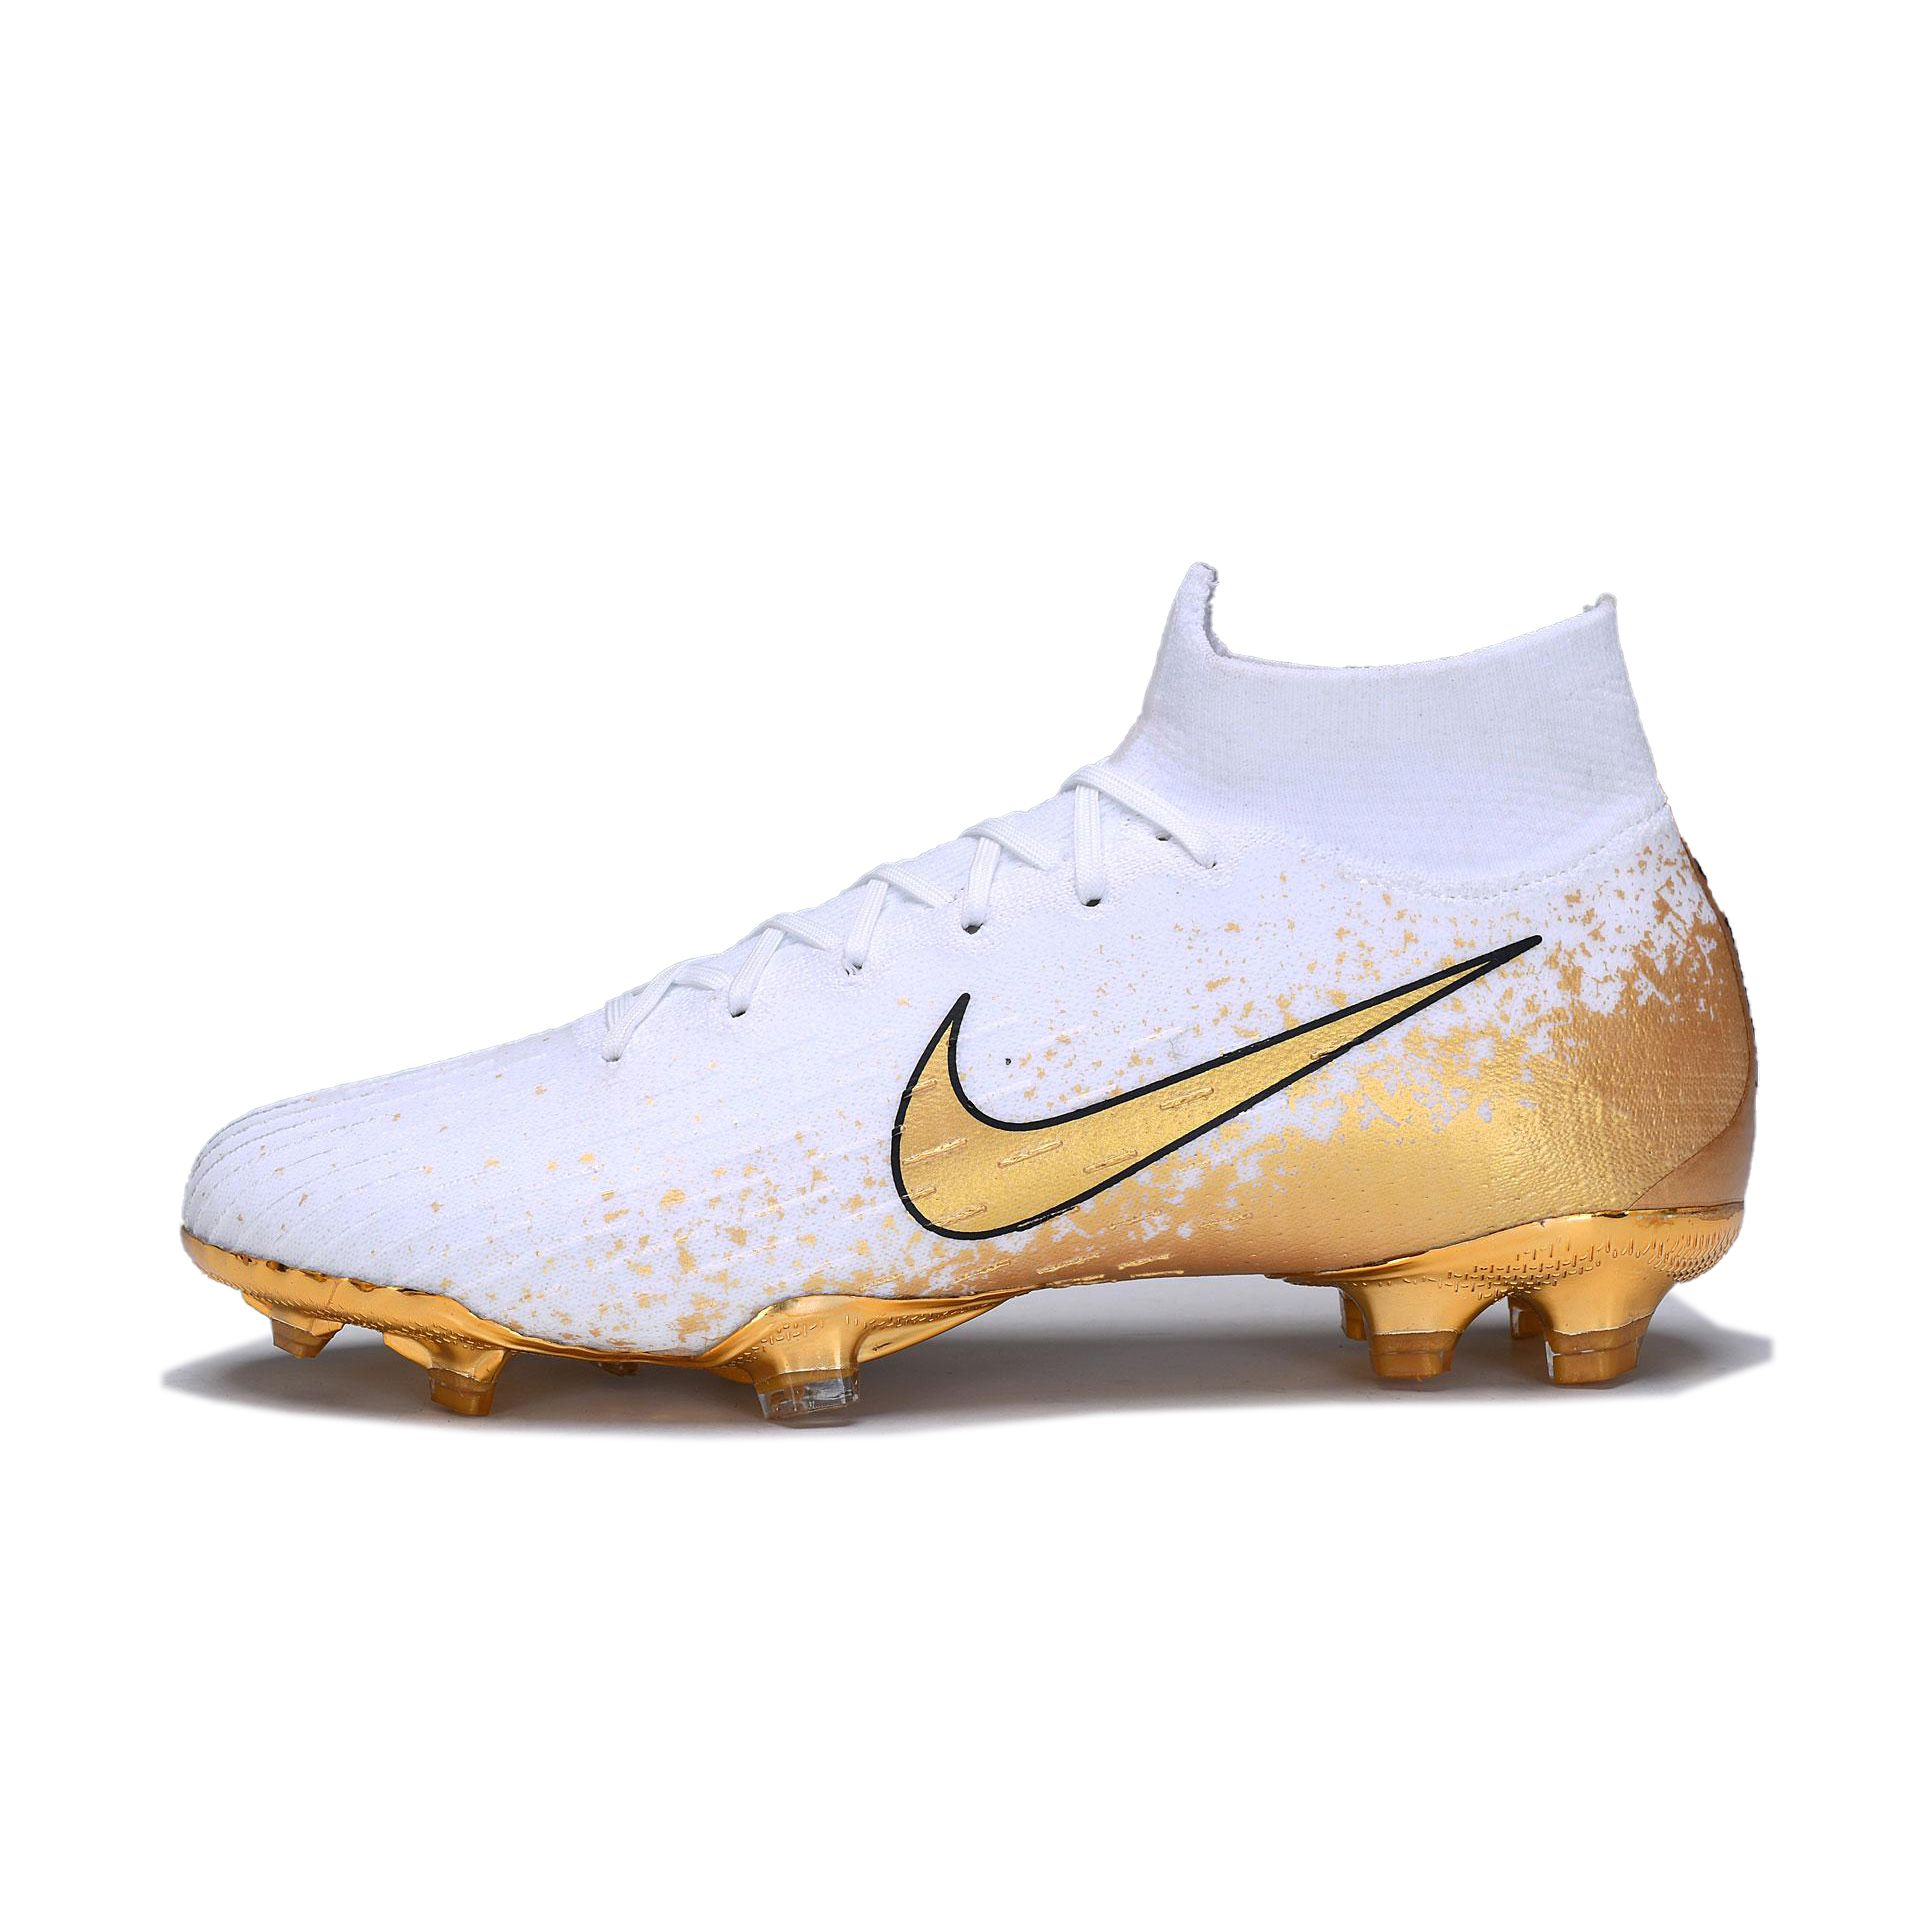 pestaña Mamut diferente a  Cheap Kids Nike Mercurial Superfly VI Elite FG Euphoria Mode Boots  Champagne Gold